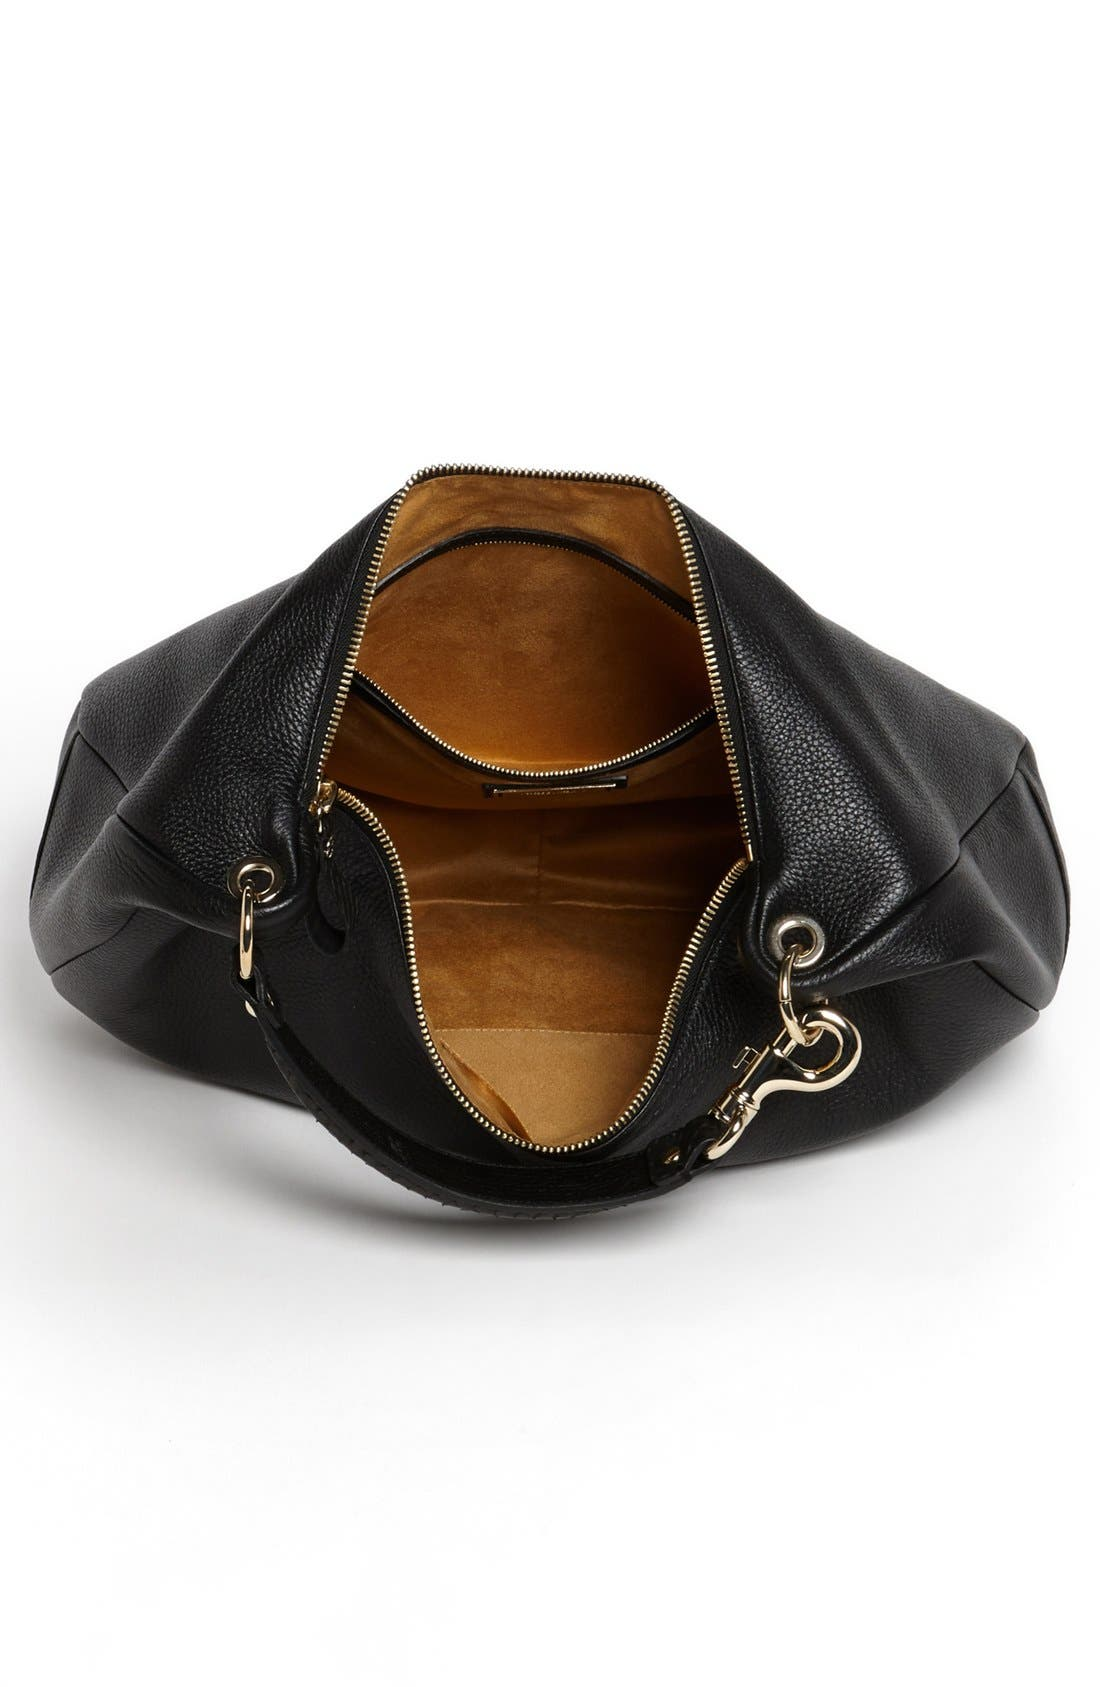 Alternate Image 3  - Jimmy Choo 'Large Solar' Leather Hobo